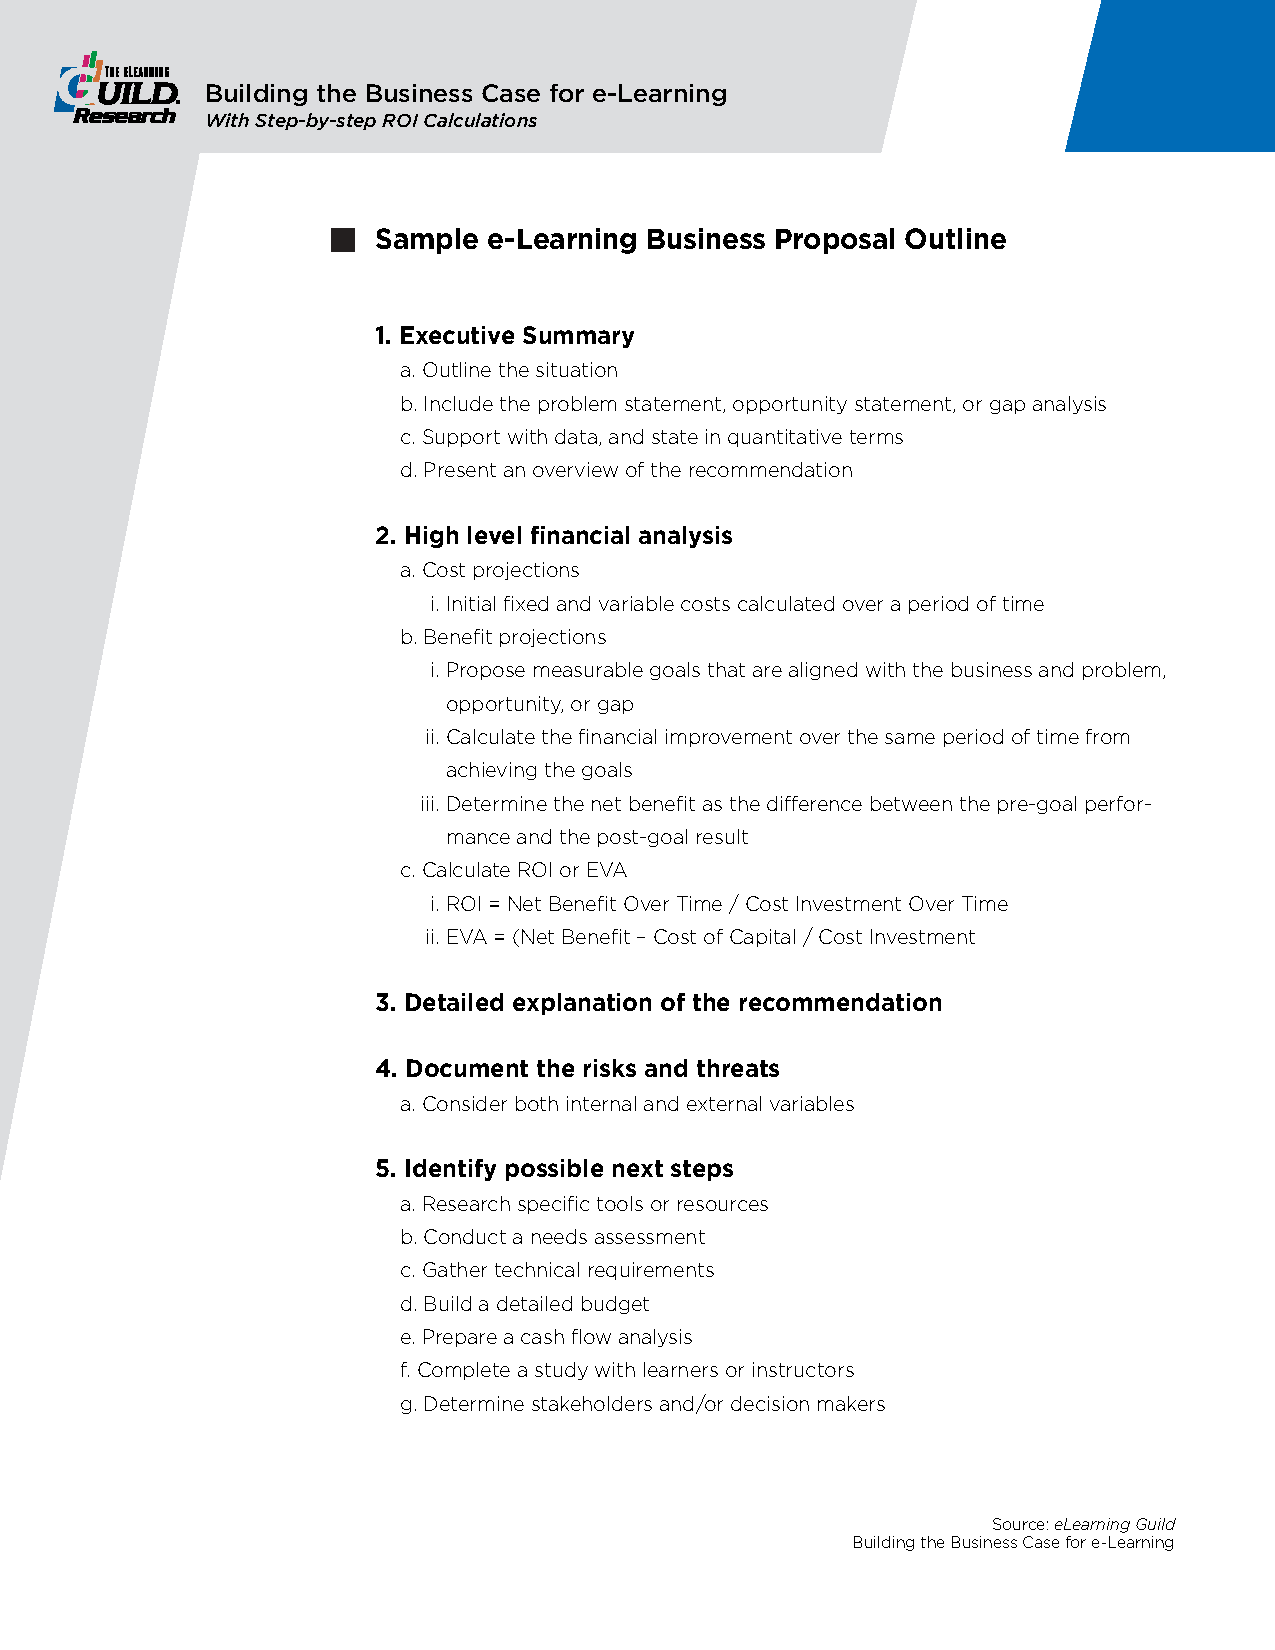 Sample Business Proposal Outline